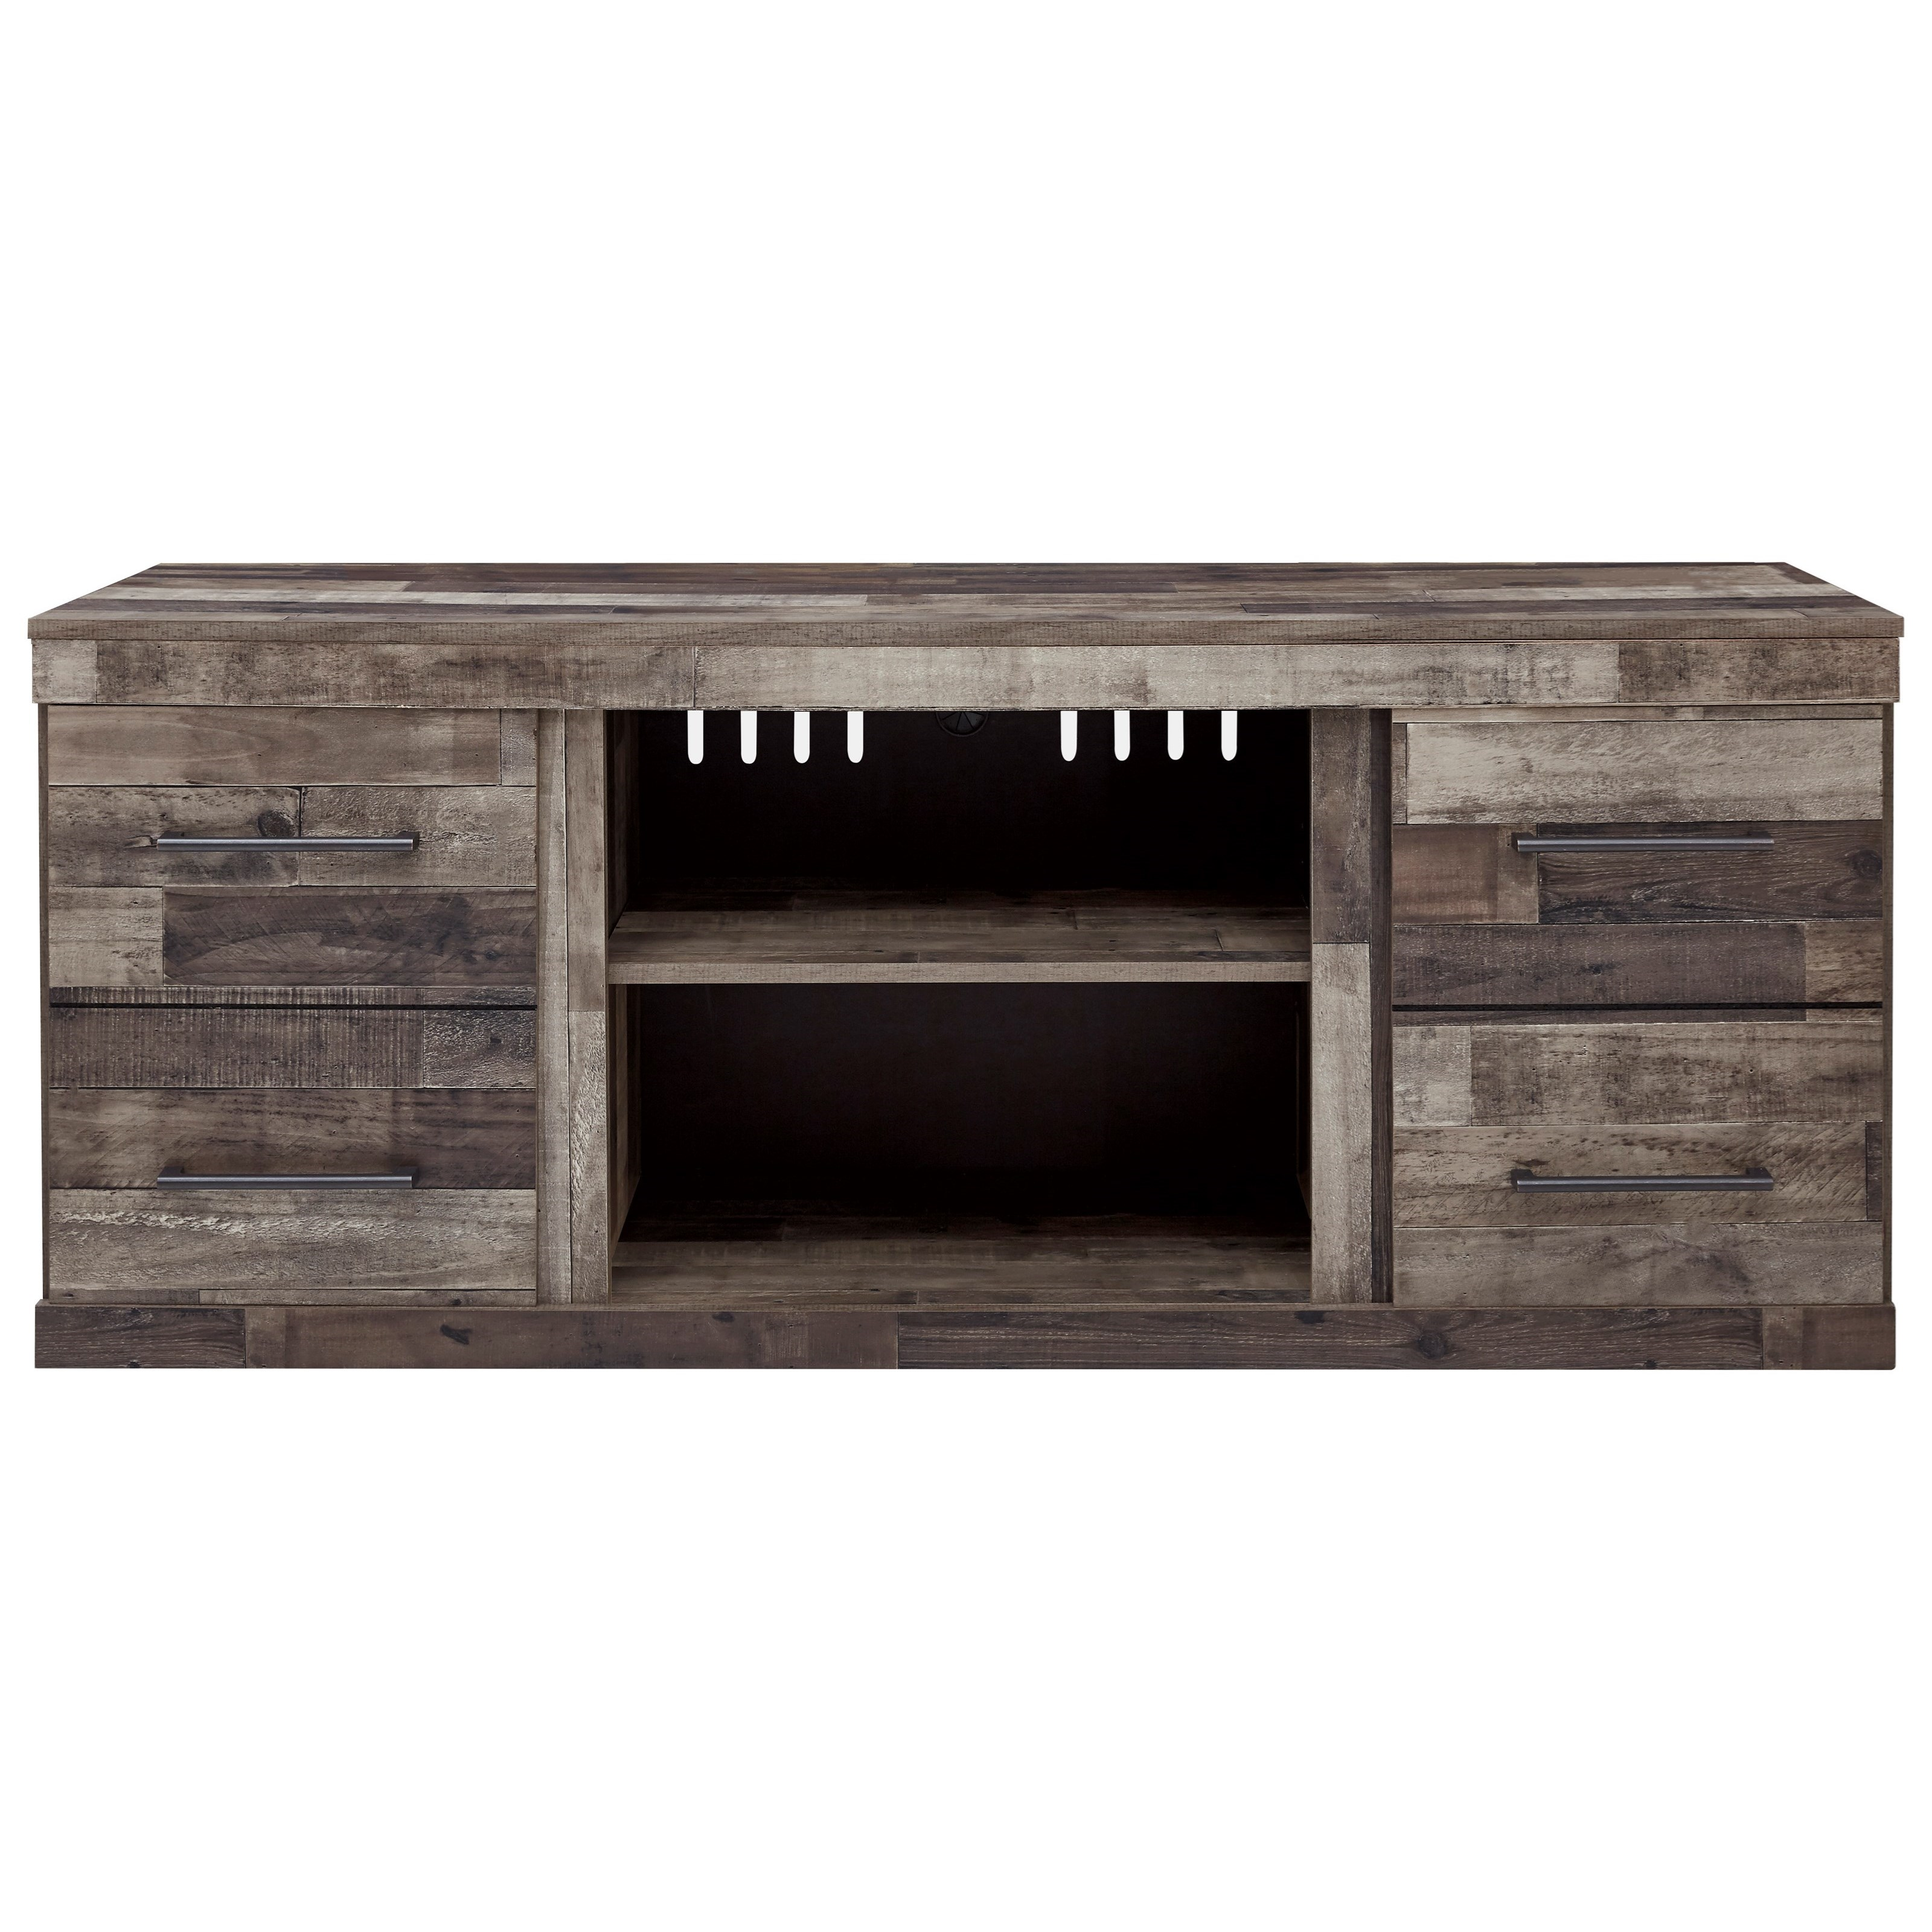 Derekson Large TV Stand by Signature Design by Ashley at Northeast Factory Direct